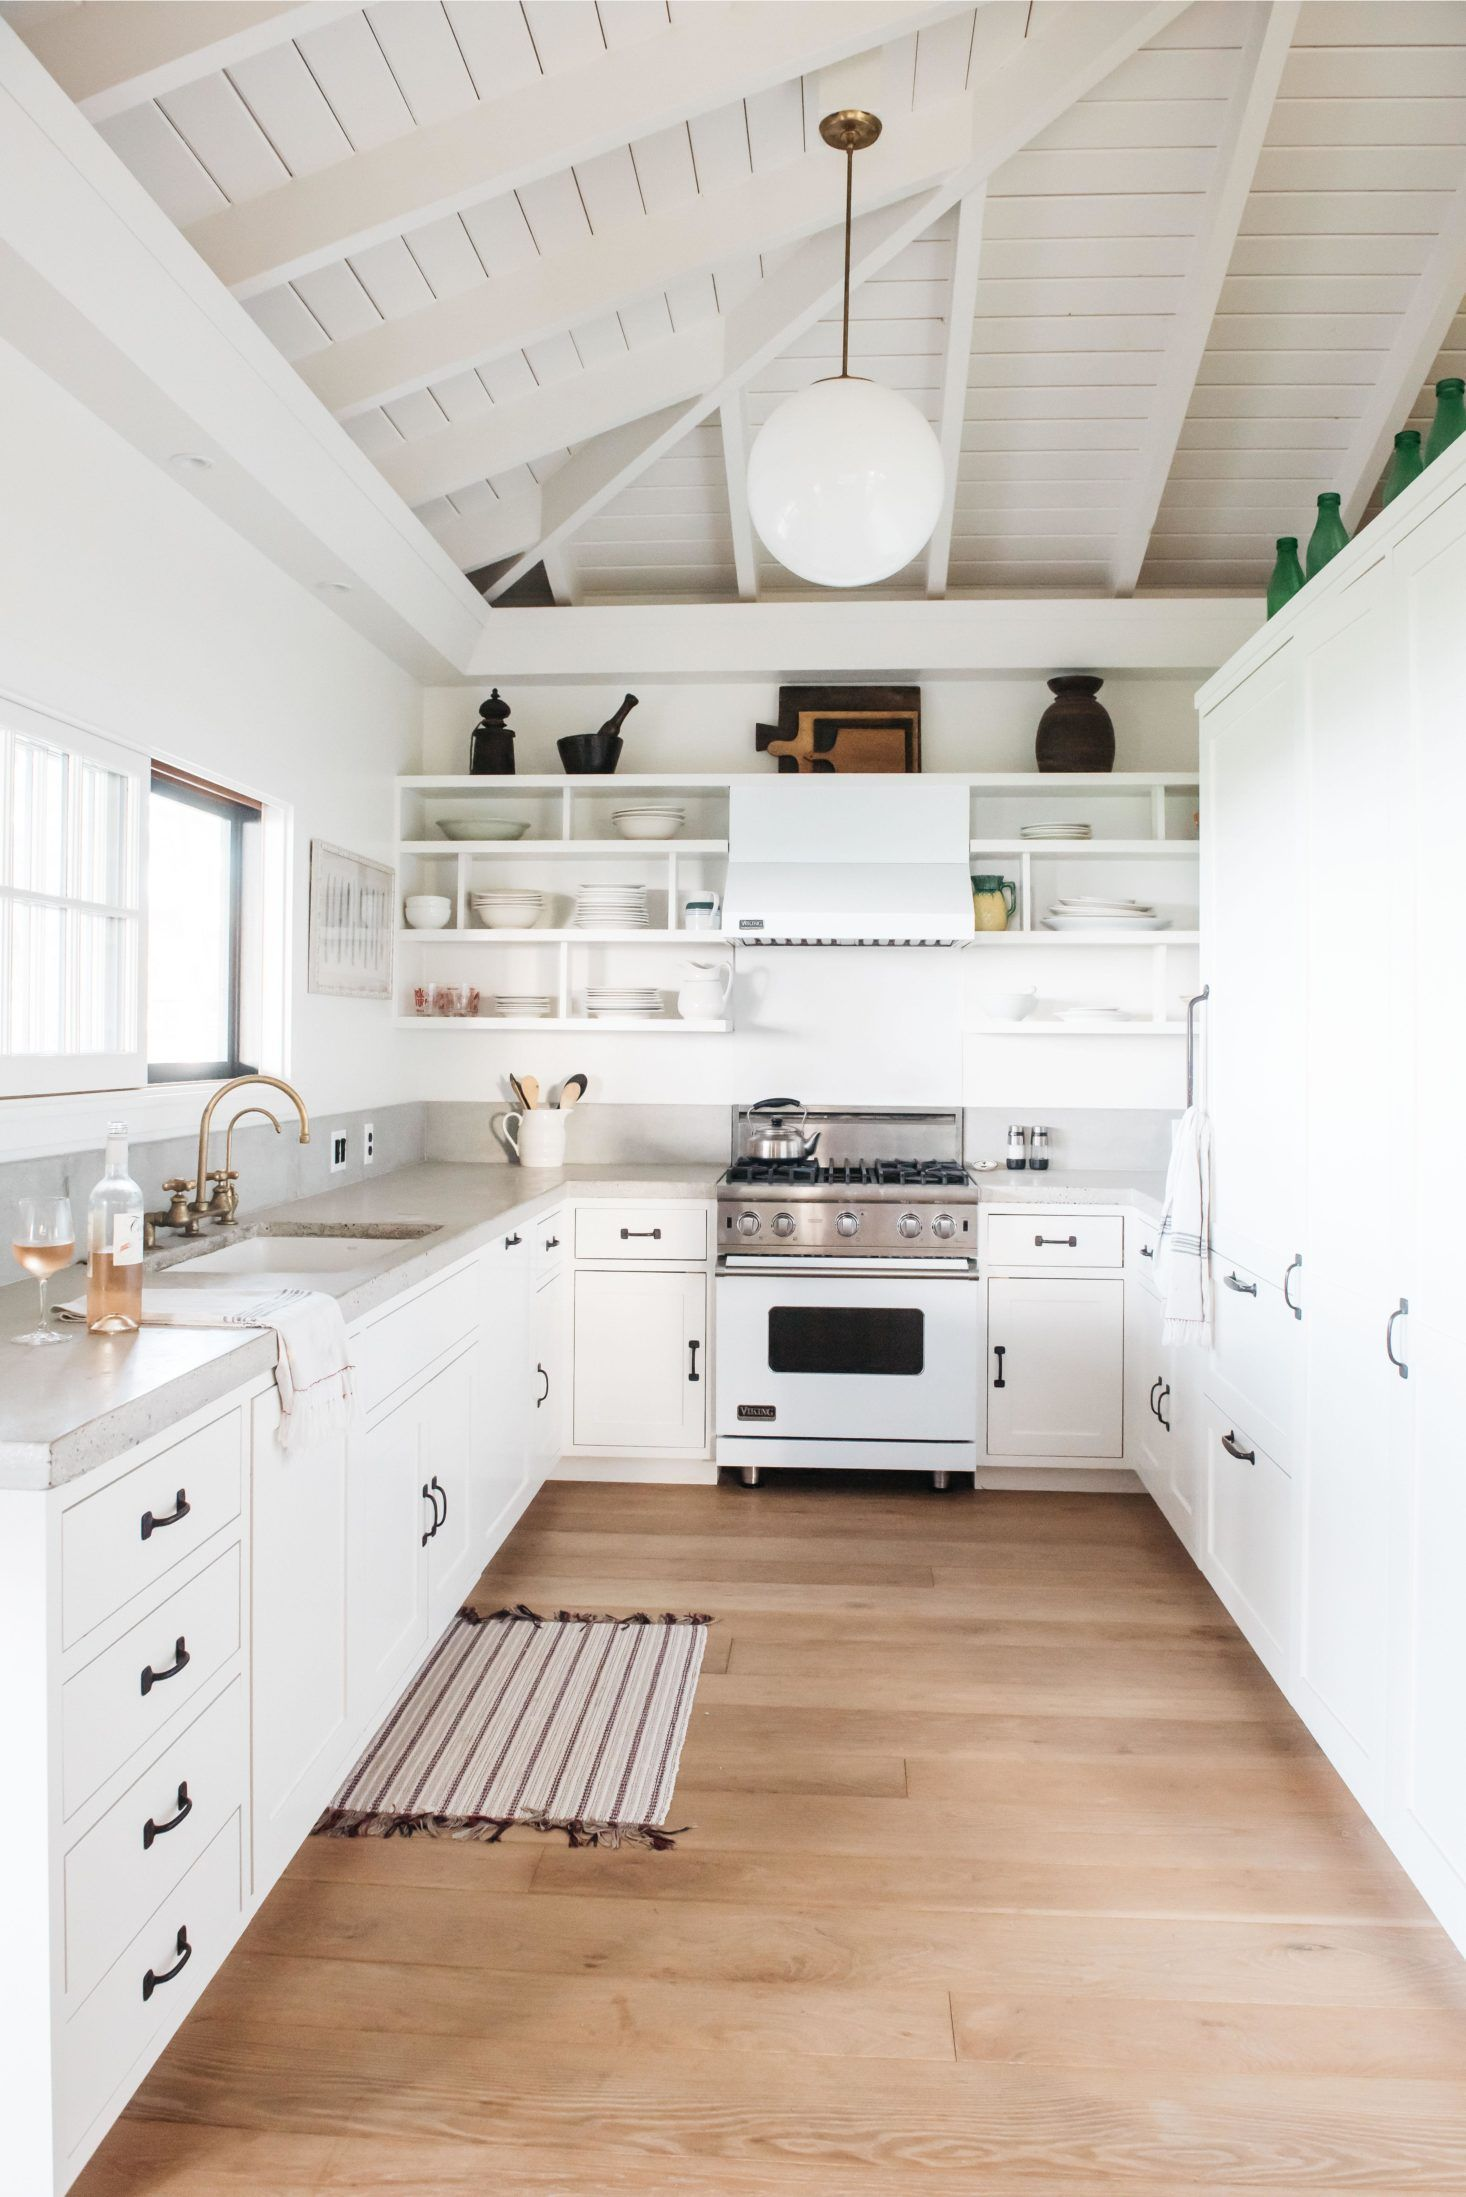 Sliding window over kitchen sink  the kitchen features whitepainted cabinetry and a sliding window